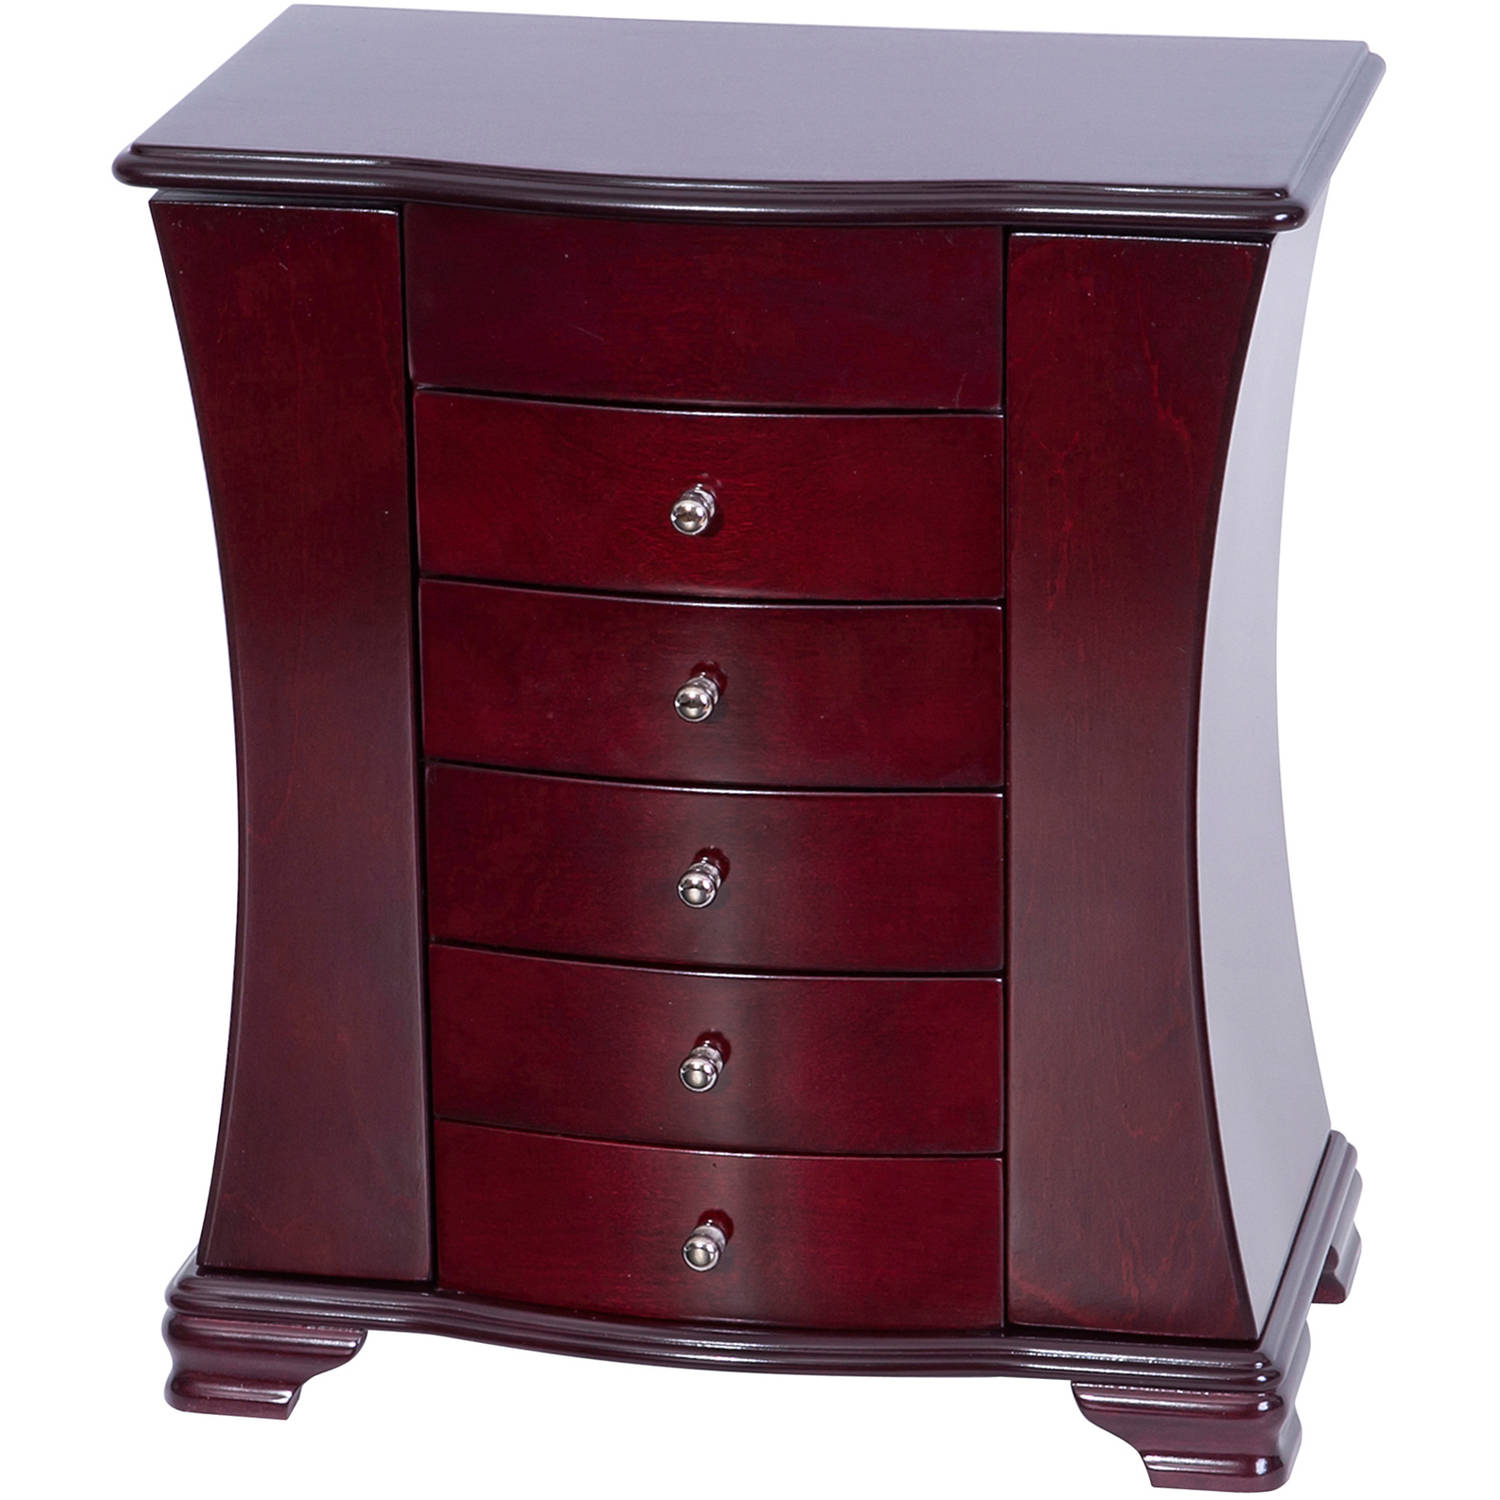 Mele Designs Vivian Wooden Jewelry Box, Cherry Finish